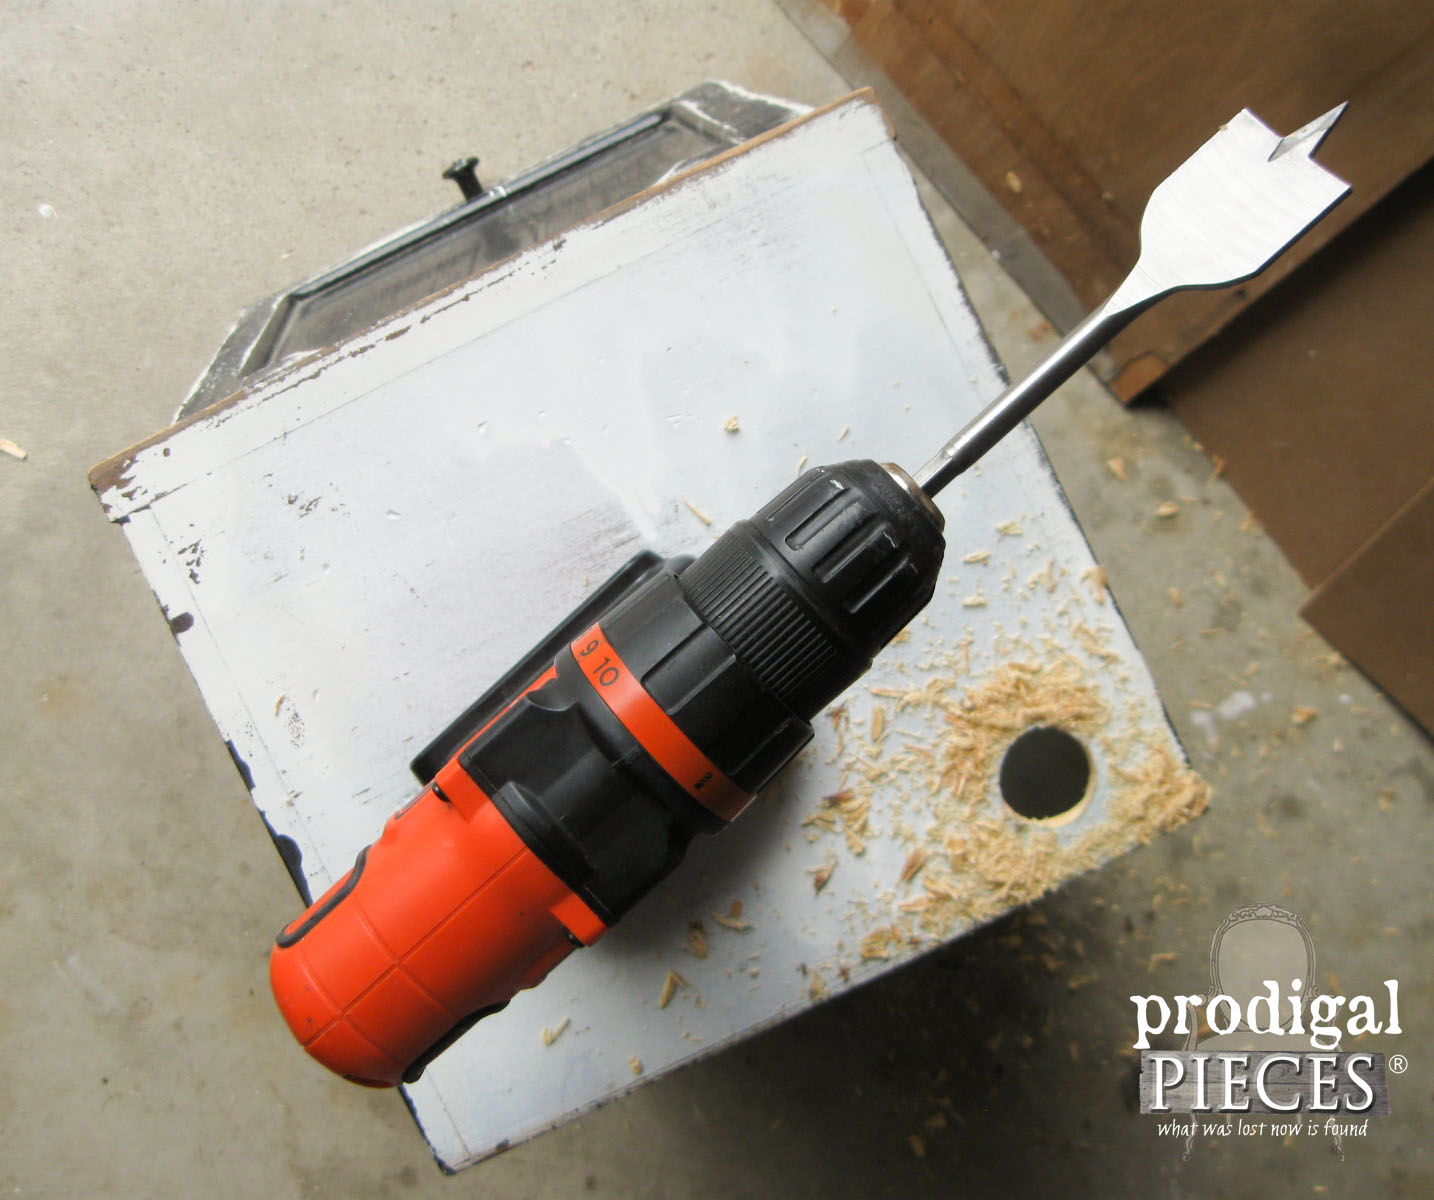 Drilling Charging Station Hole in Bread Box | Prodigal Pieces | www.prodigalpieces.com